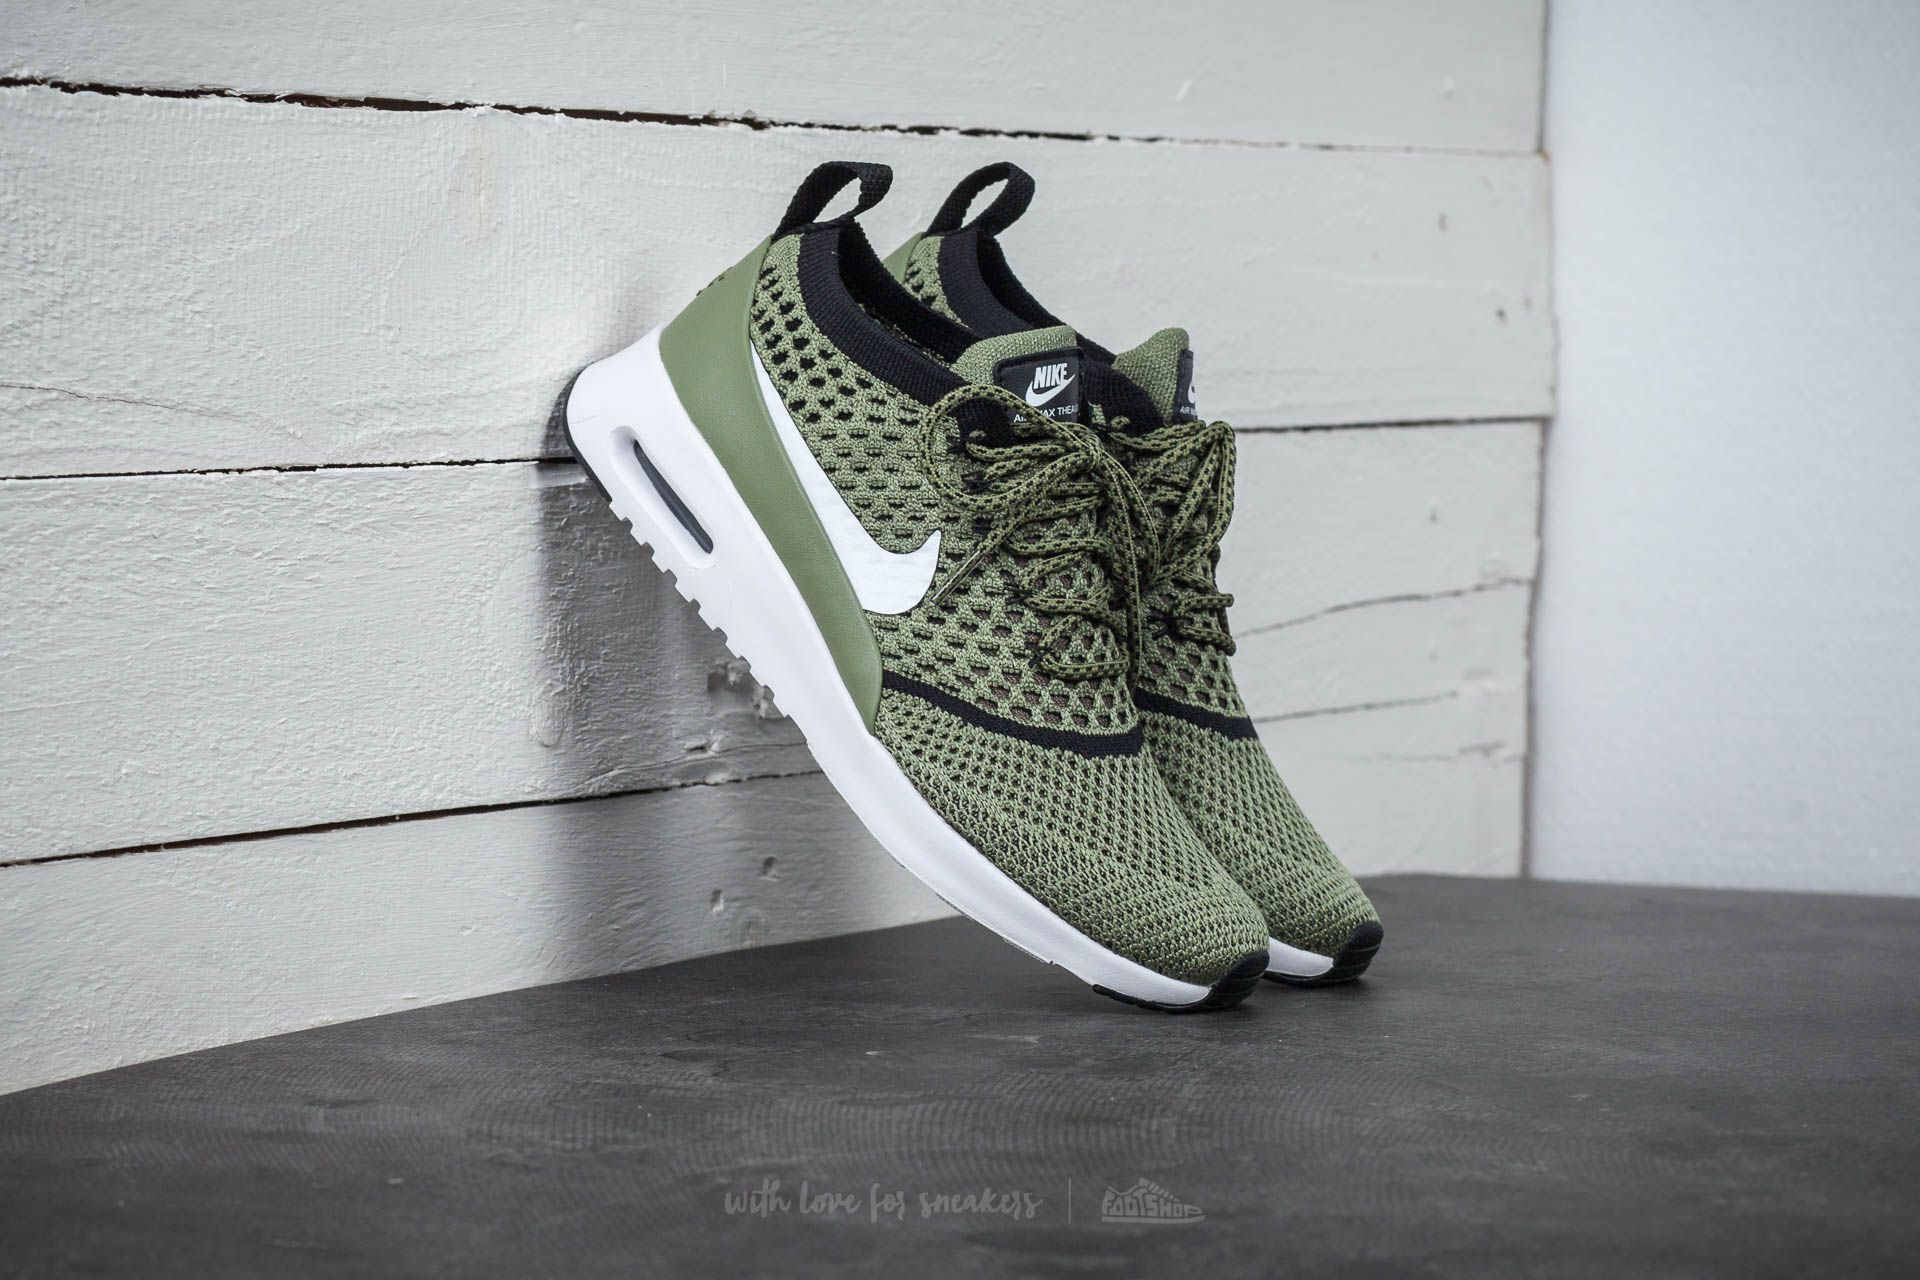 ef12b614f9 Nike Wmns Air Max Thea Ultra Flyknit Palm Green/ White-Black ...